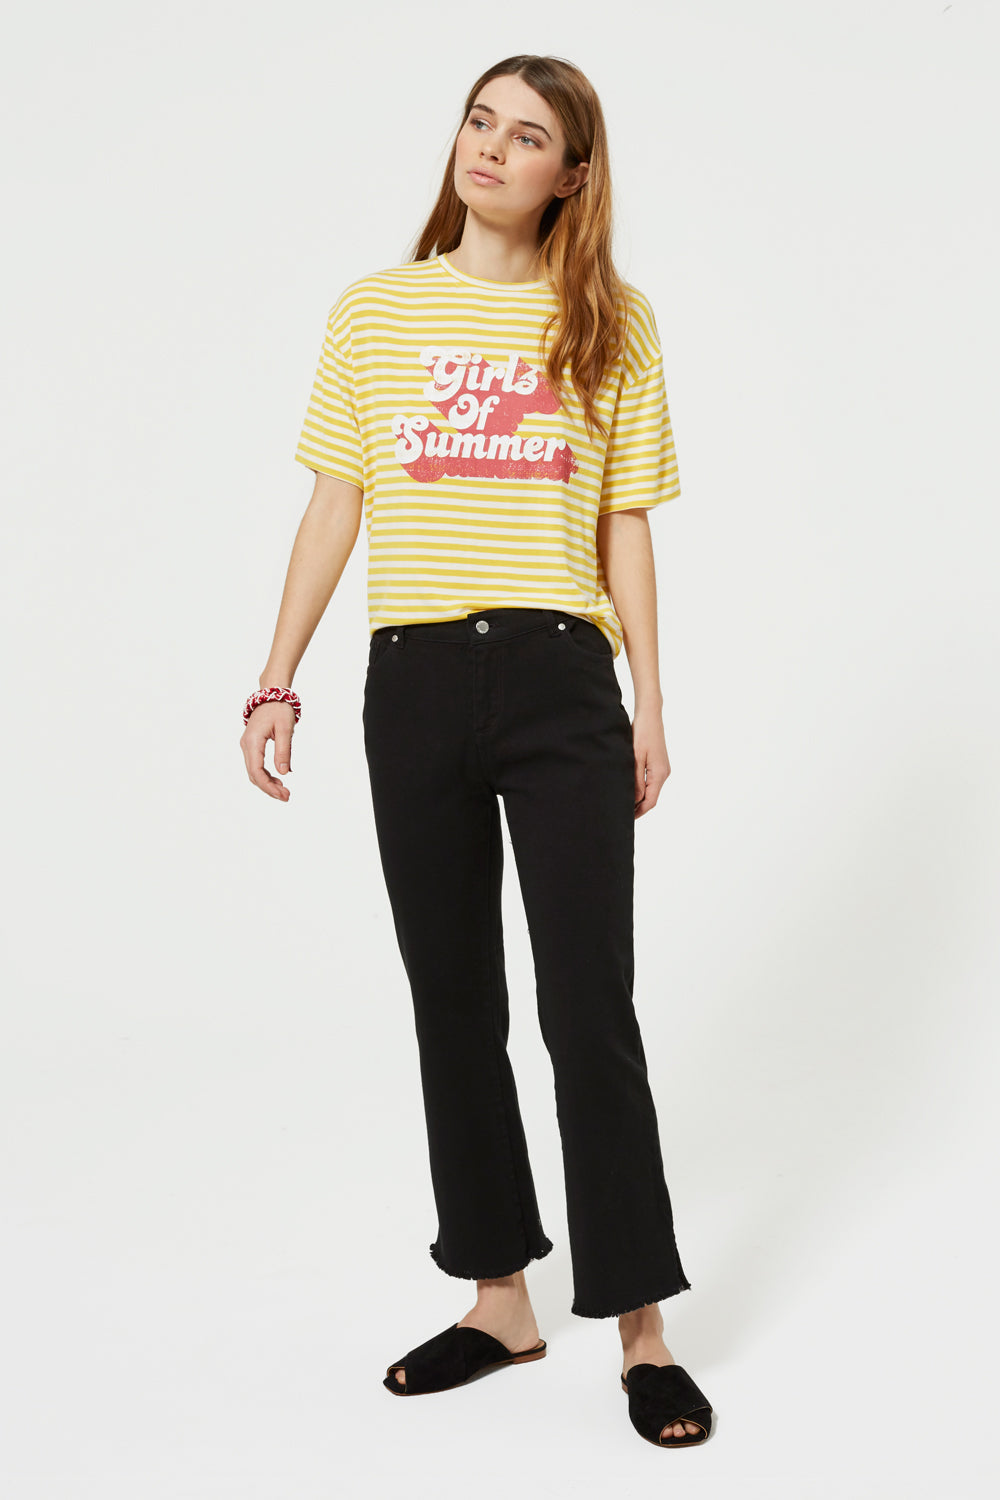 Girls Of Summer Ronnie Tee